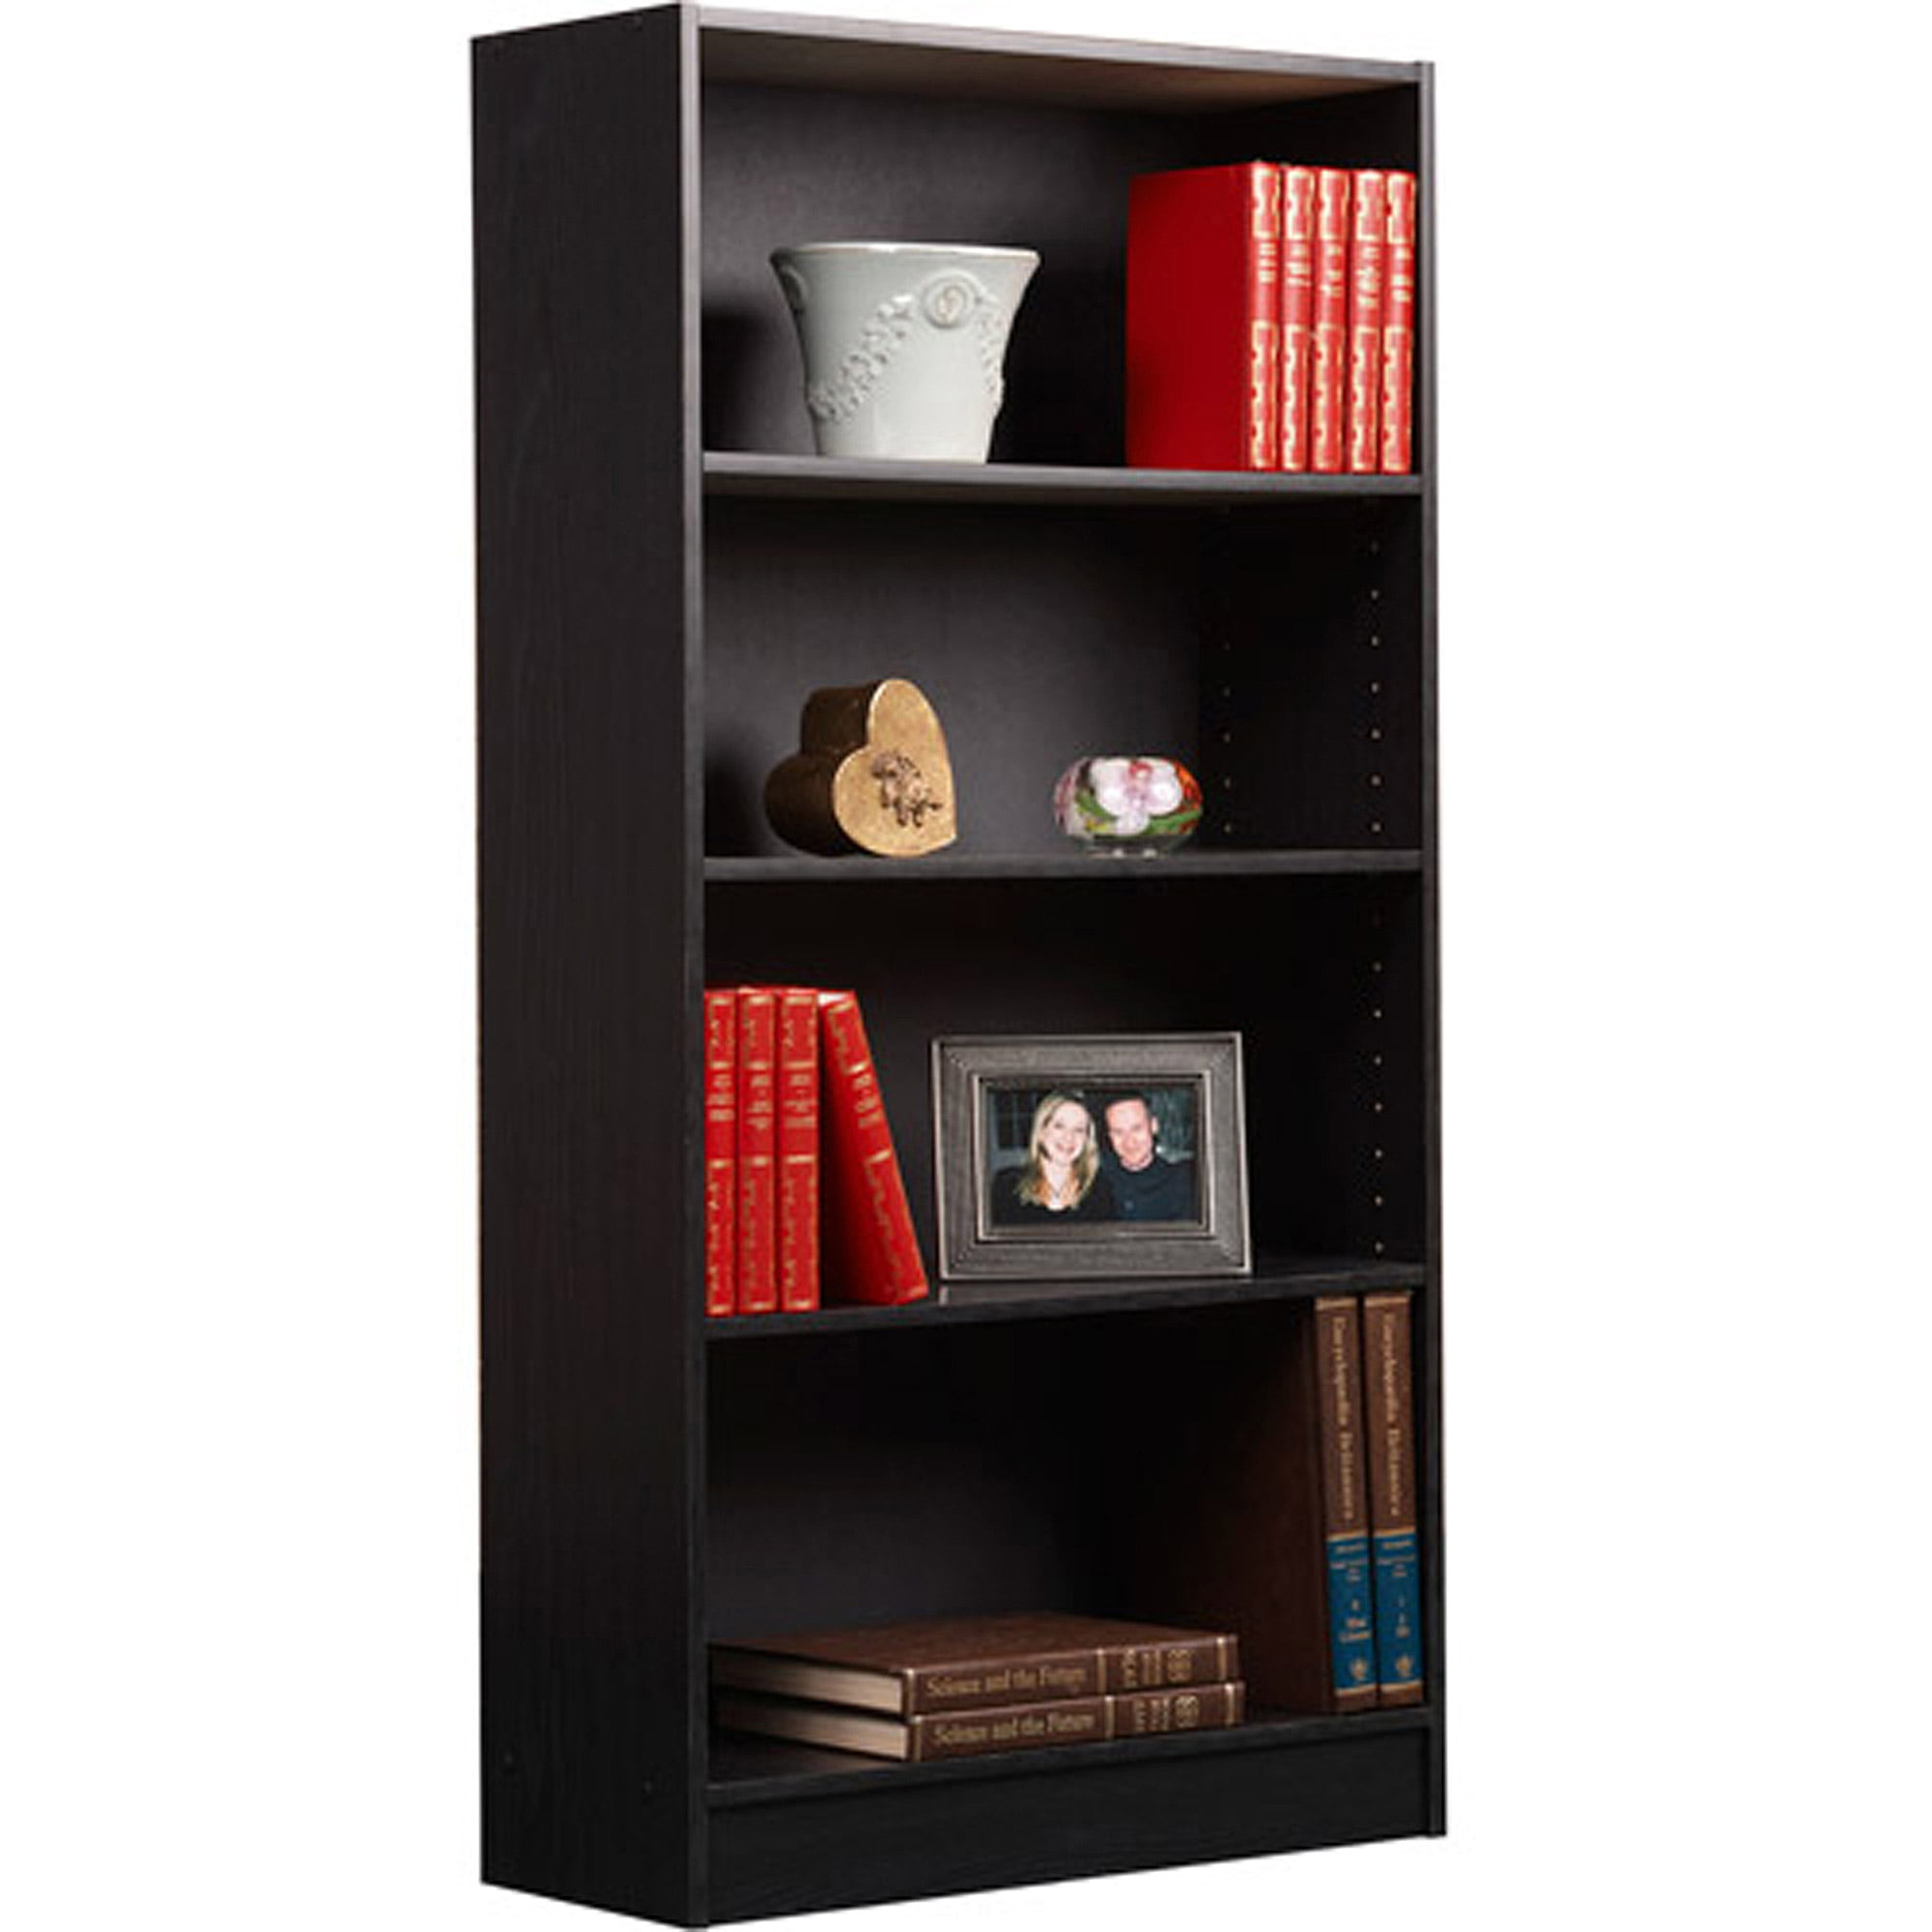 horrible boo b size full office glorious of premium depot shelf cube uncategorized wood bookshelf for amusing bookcases captivating bookcase